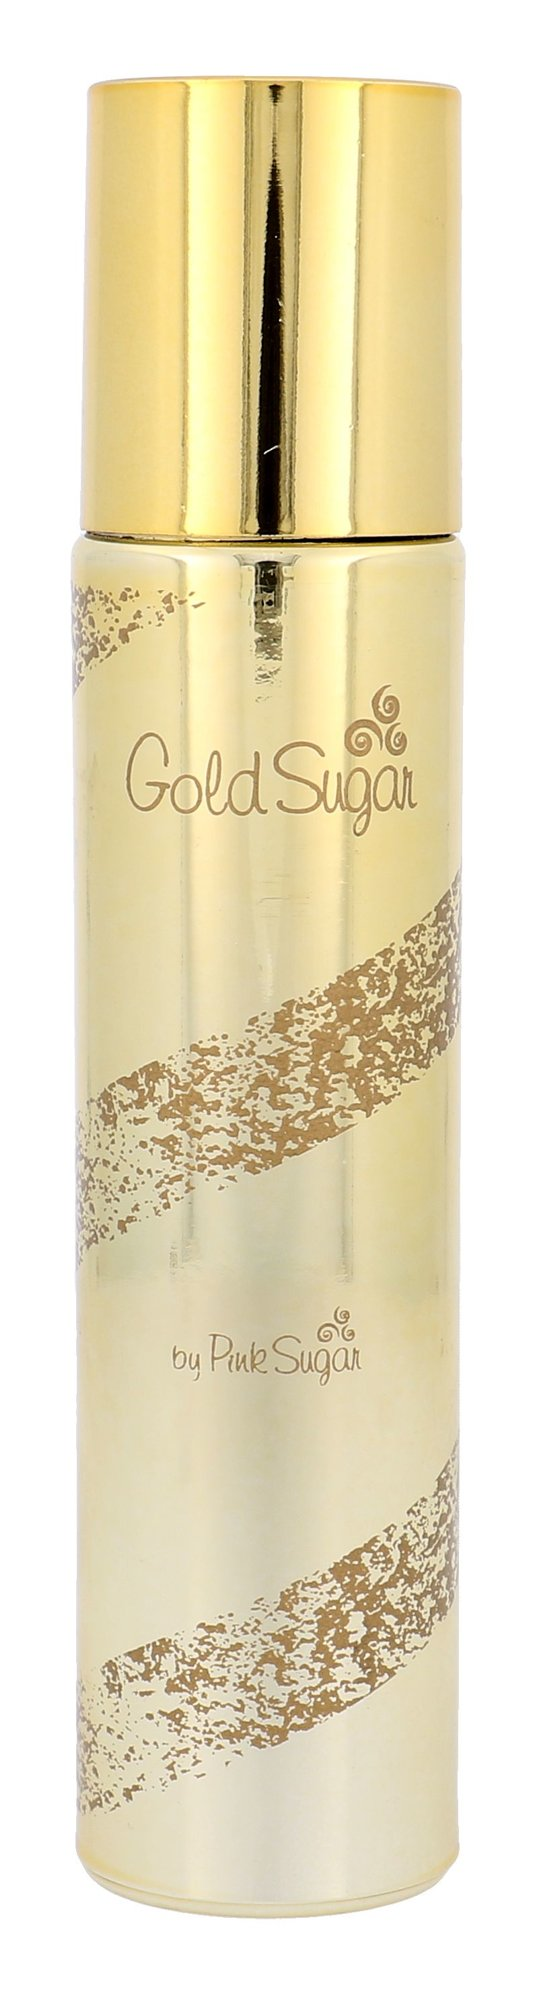 Aquolina Gold Sugar EDT 50ml